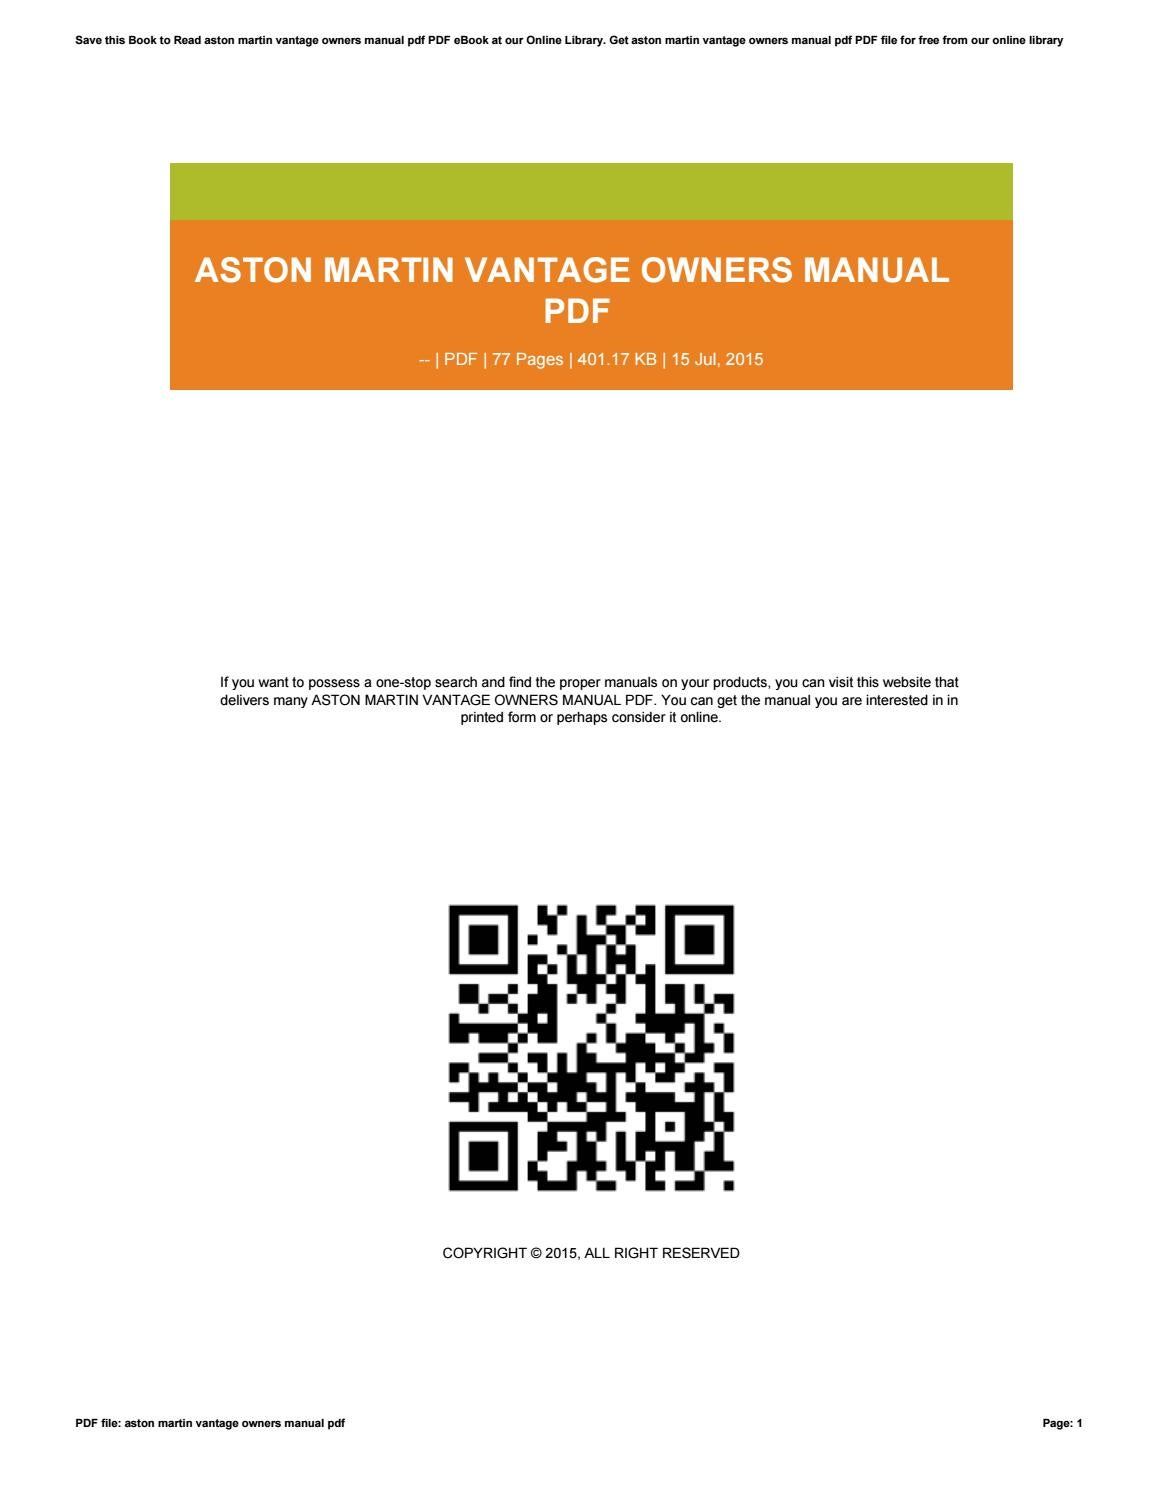 aston martin owners manual ebook rh aston martin owners manual ebook tempower us Awrds of Kingfisher Airlines Kingfisher Airlines